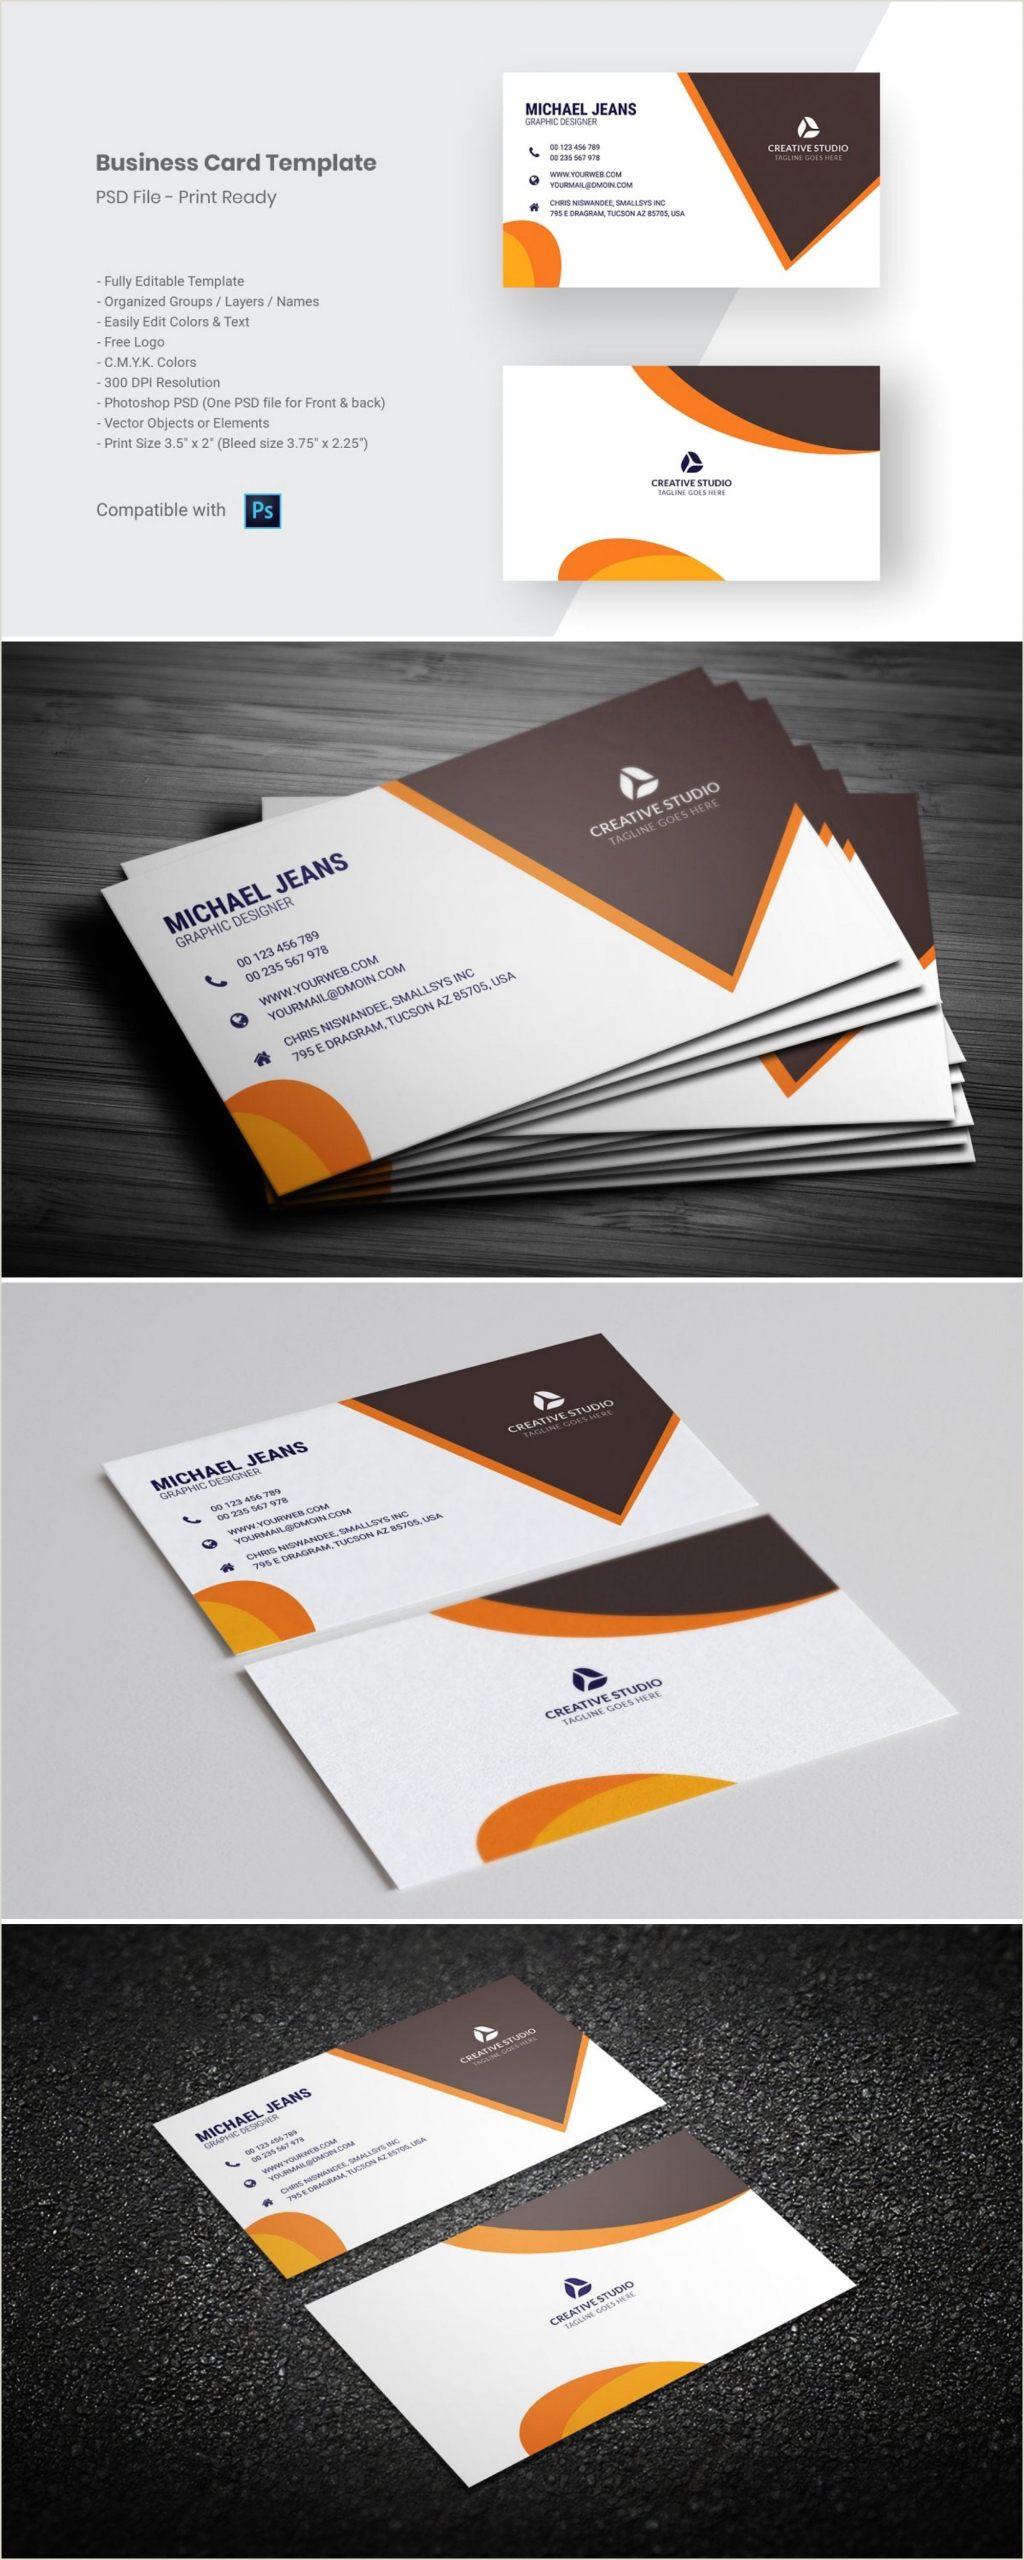 Business Card Background Images Modern Business Card Template